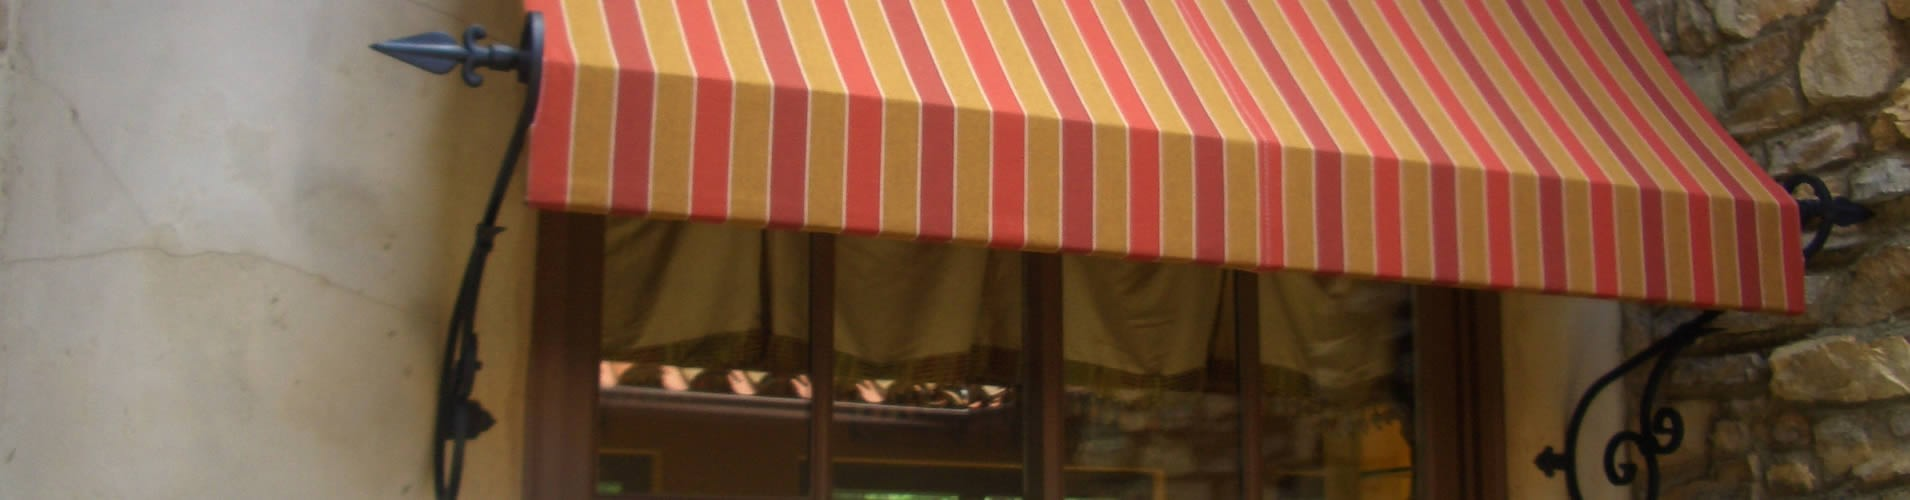 Contact Premier Rollout Awnings of Fort Lauderdale